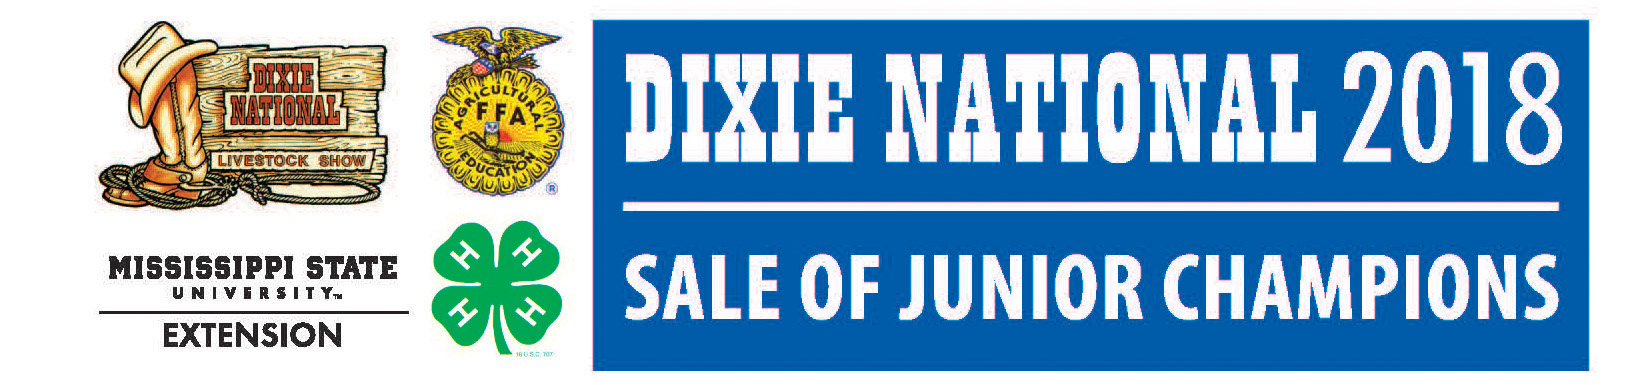 The Dixie National 2018 Sale of Junior Champions logo